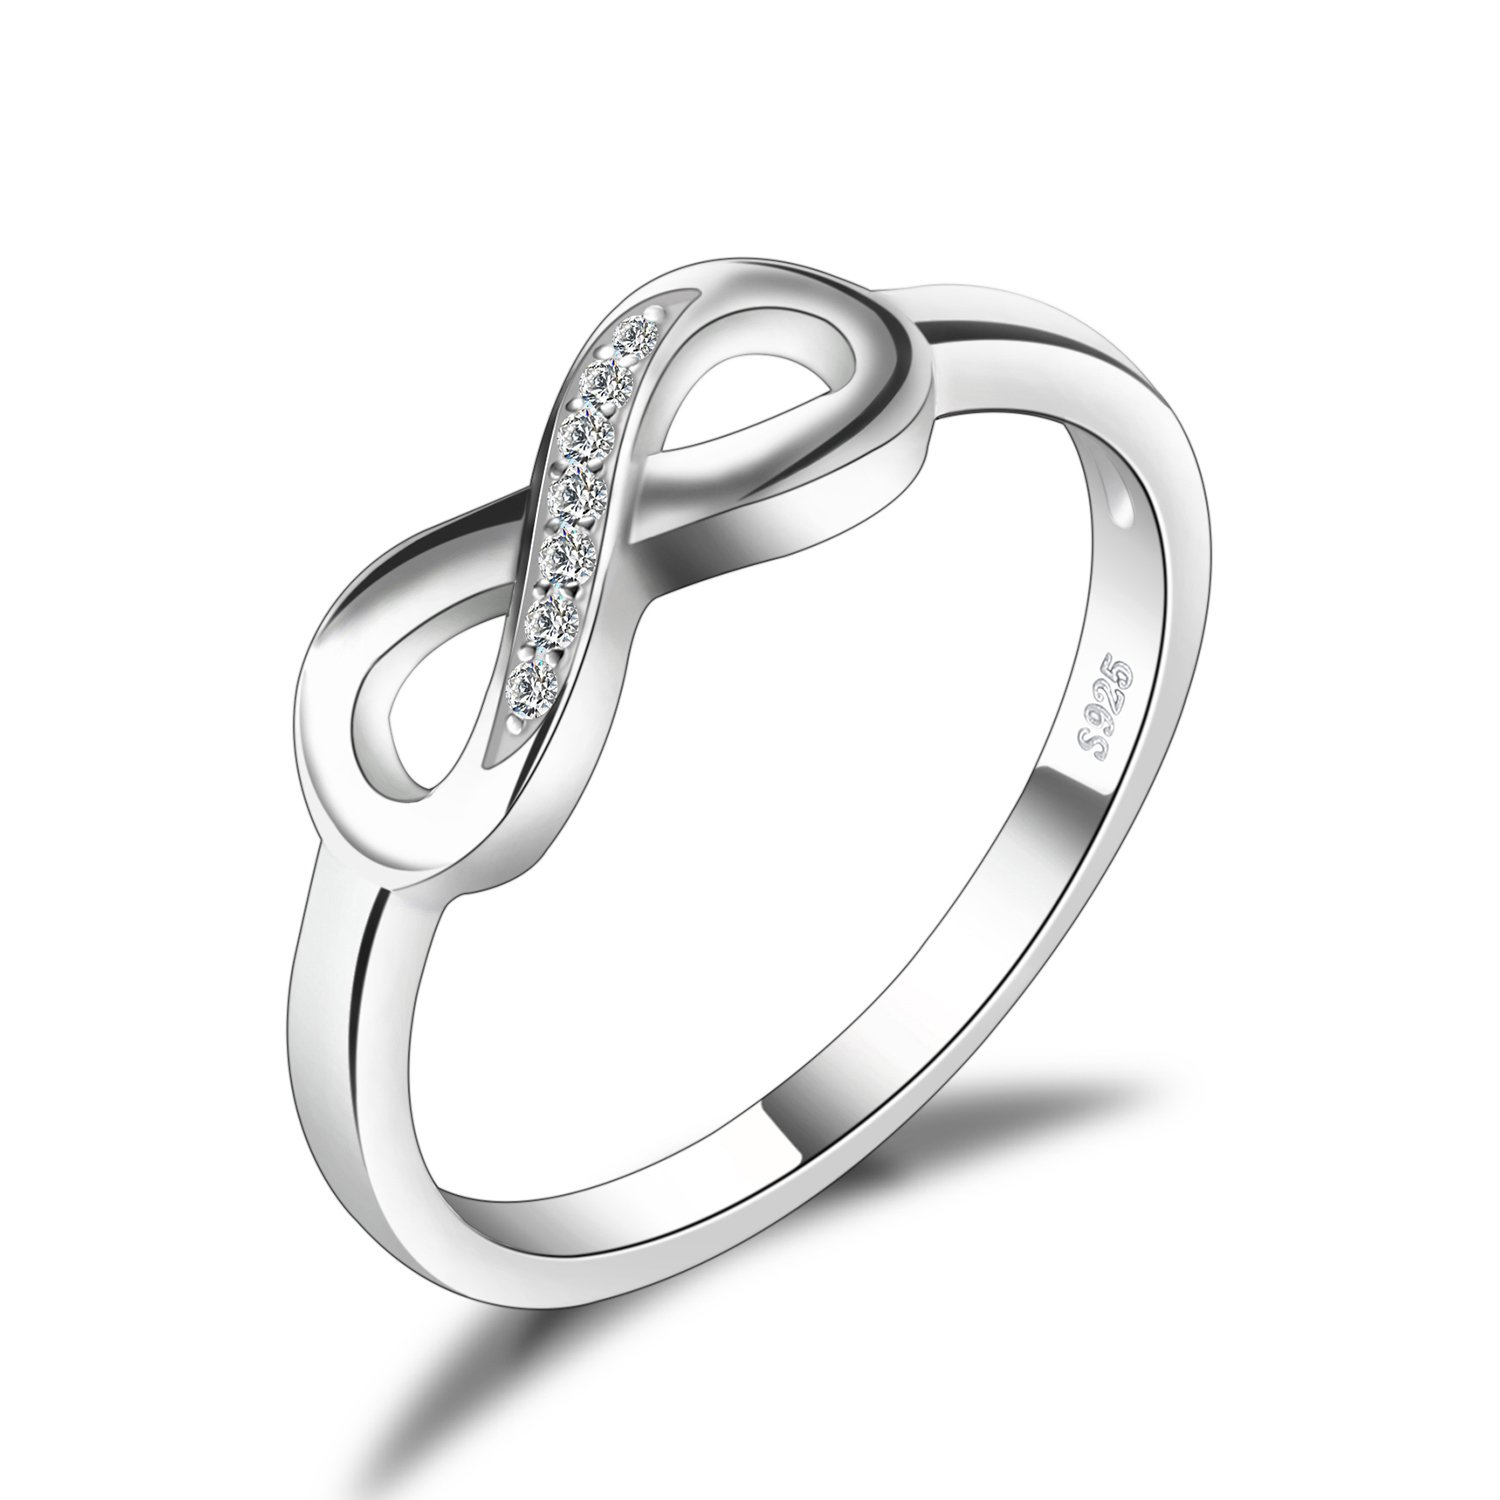 JewelryPalace Infinity Forever Love Cubic Zirconia Anniversary Promise Ring 925 Sterling Silver CA-AR850099